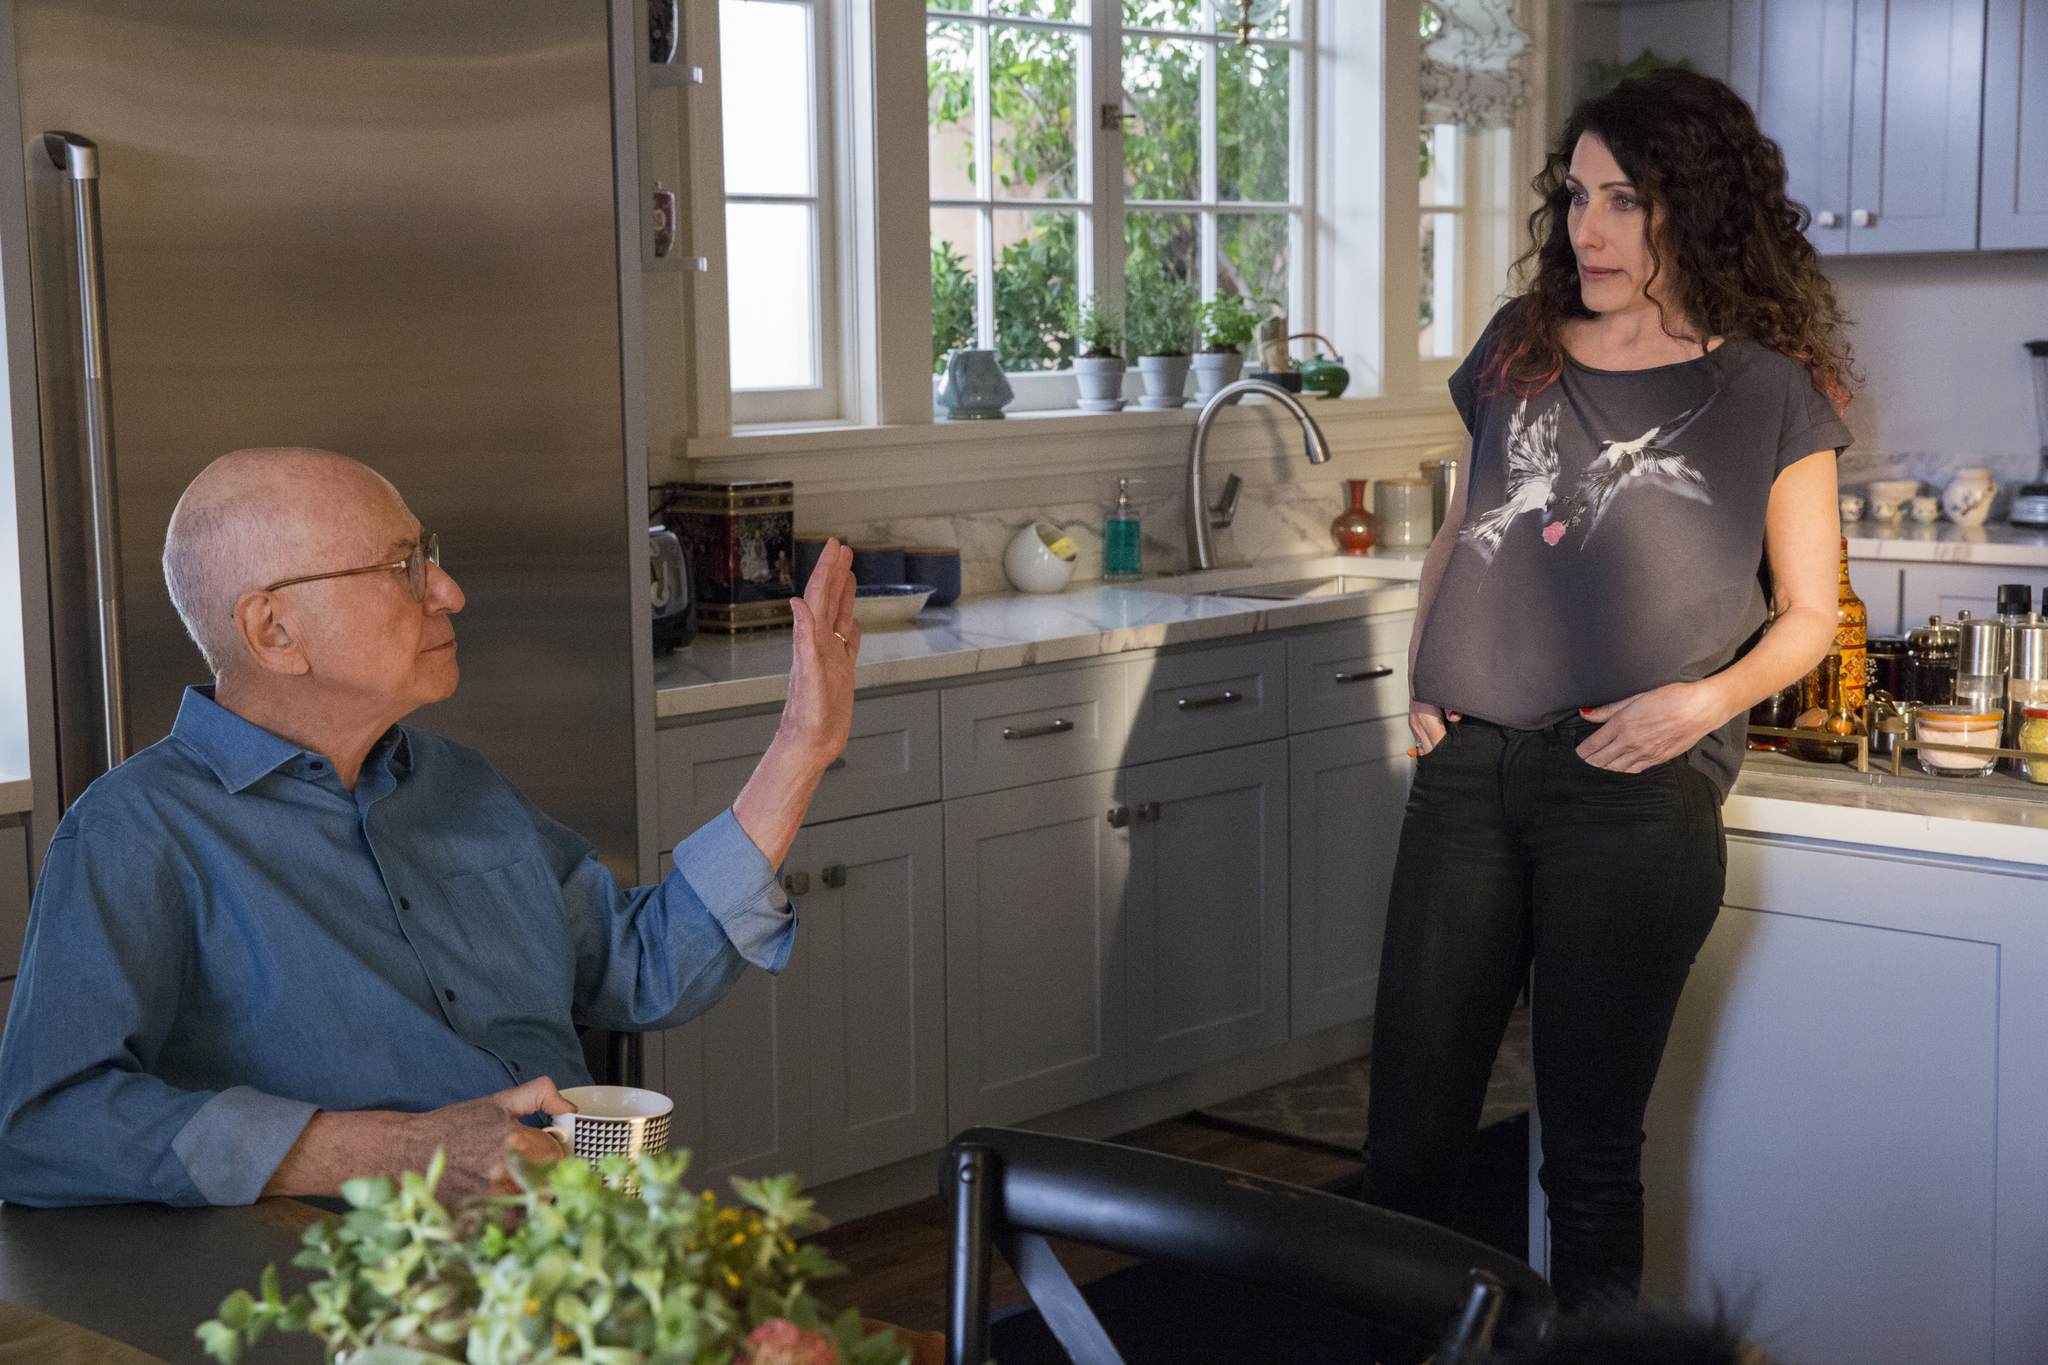 Alan Arkin and Lisa Edelstein in The Kominsky Method (2018)